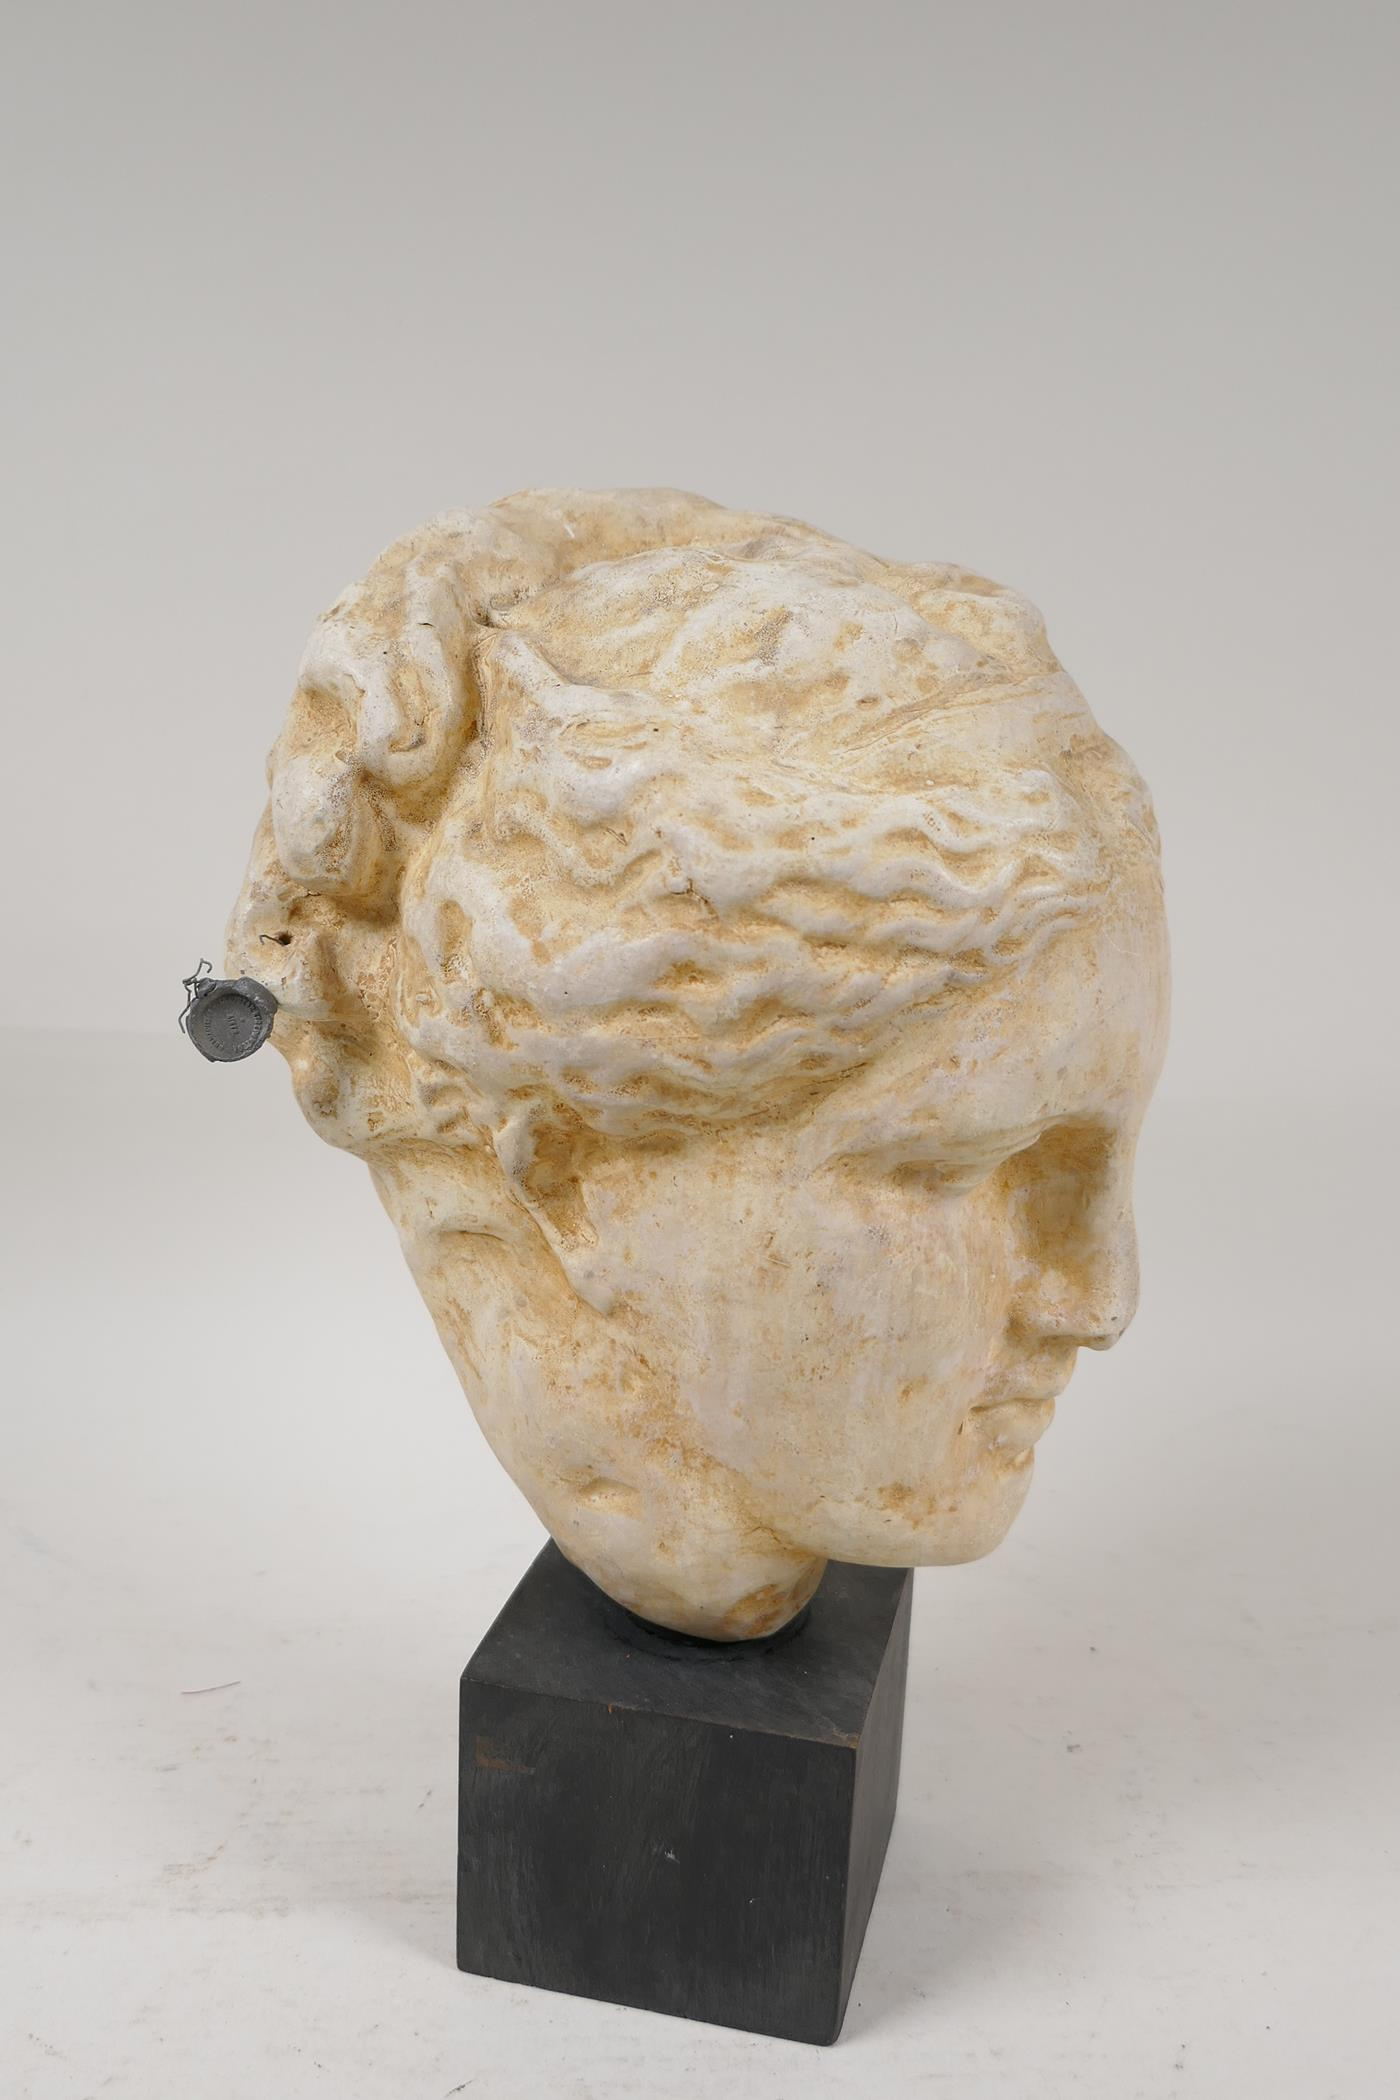 """A Grand Tour style pottery bust after the classic, with certifying seal attached, 10"""" high - Image 2 of 4"""